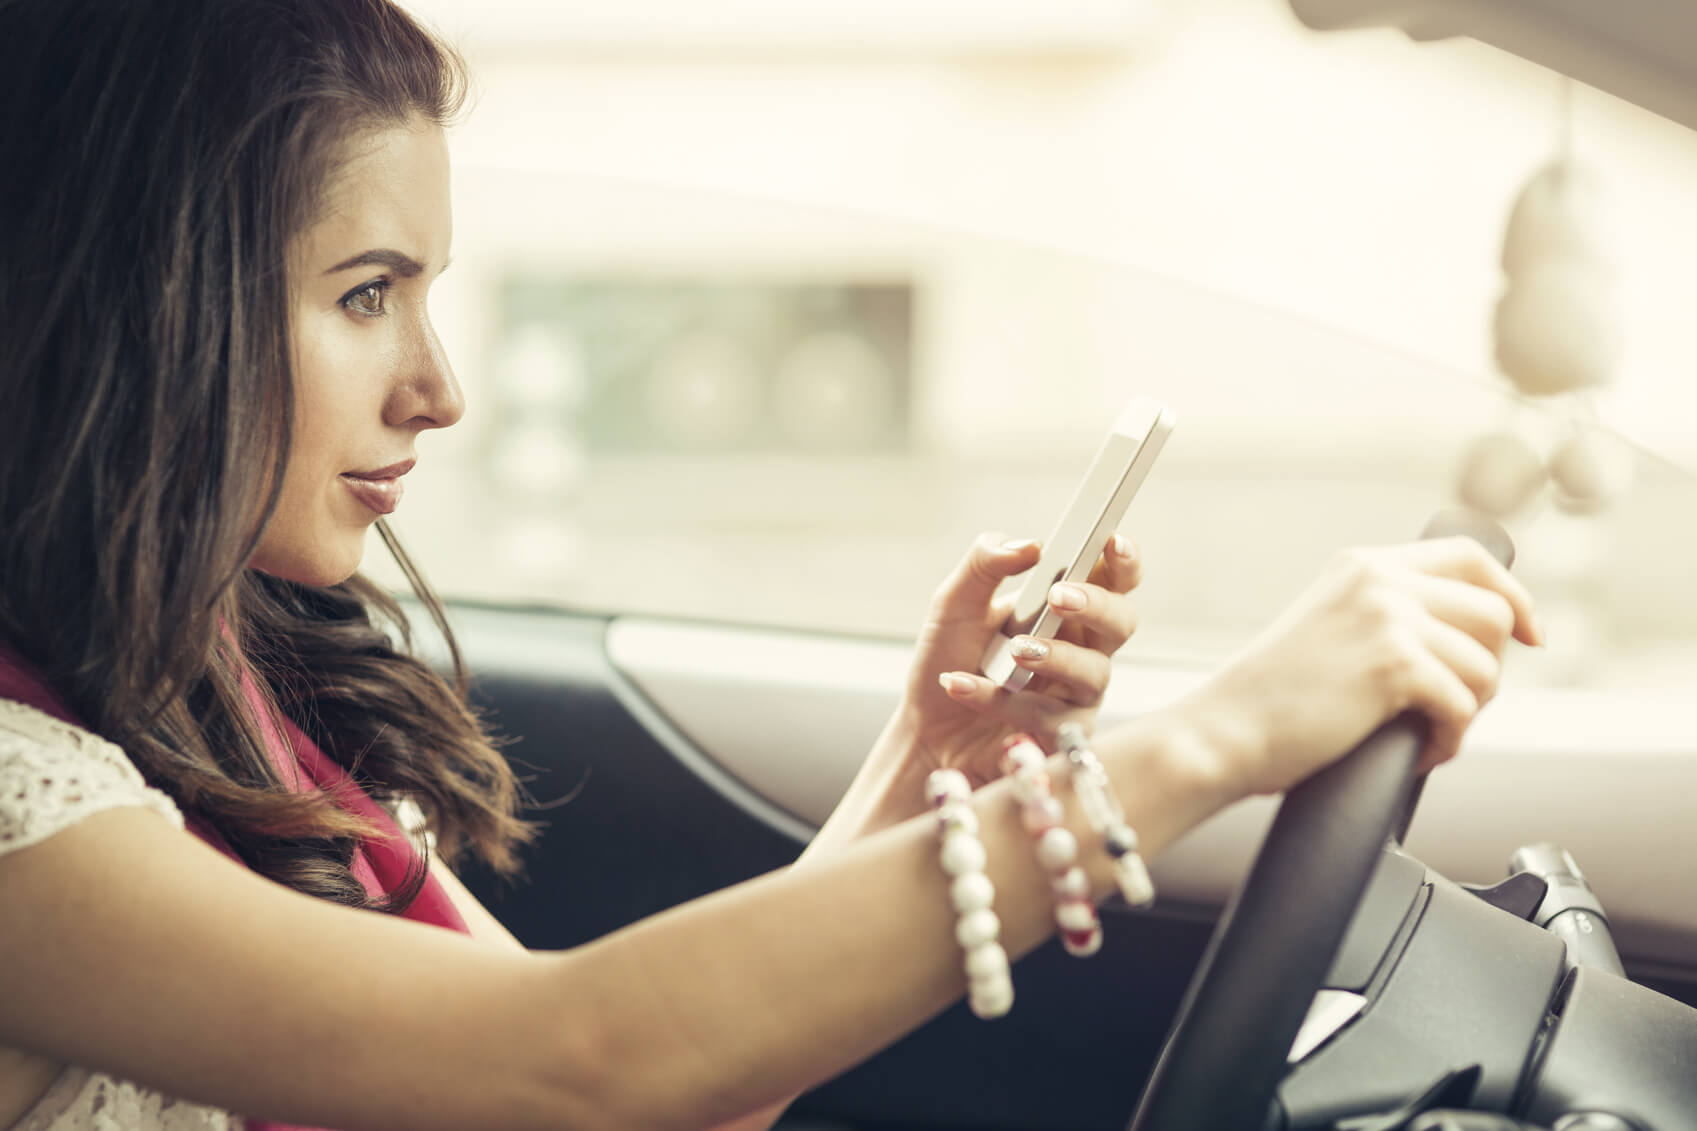 How Technology Can Protect Teens from Distracted Driving